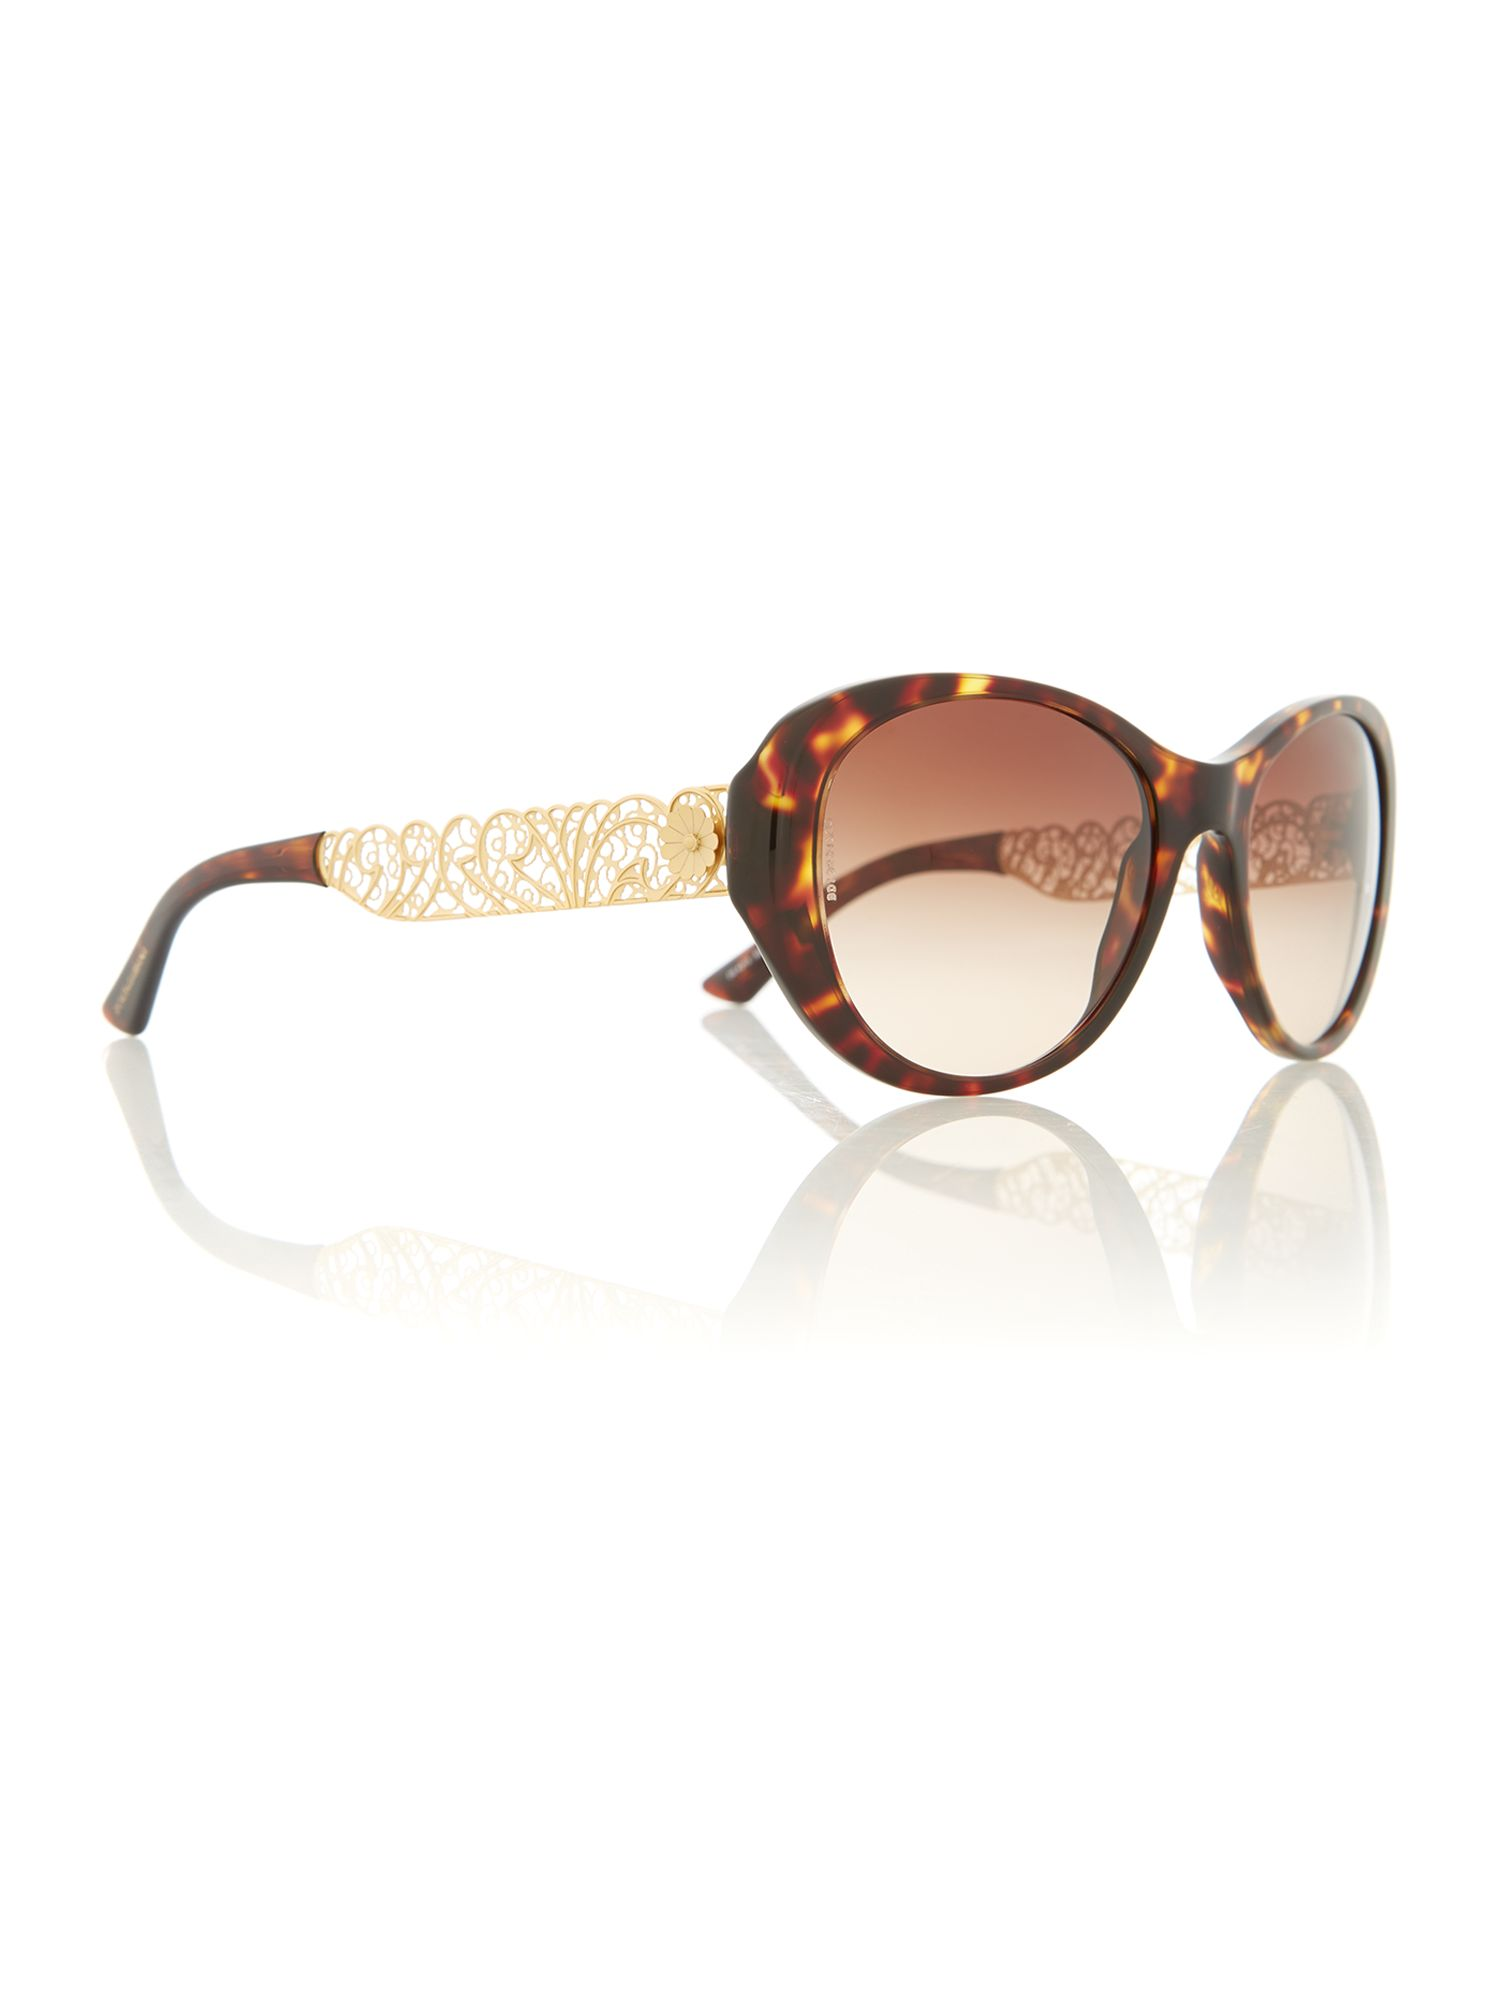 Ladies dg4213 sunglasses